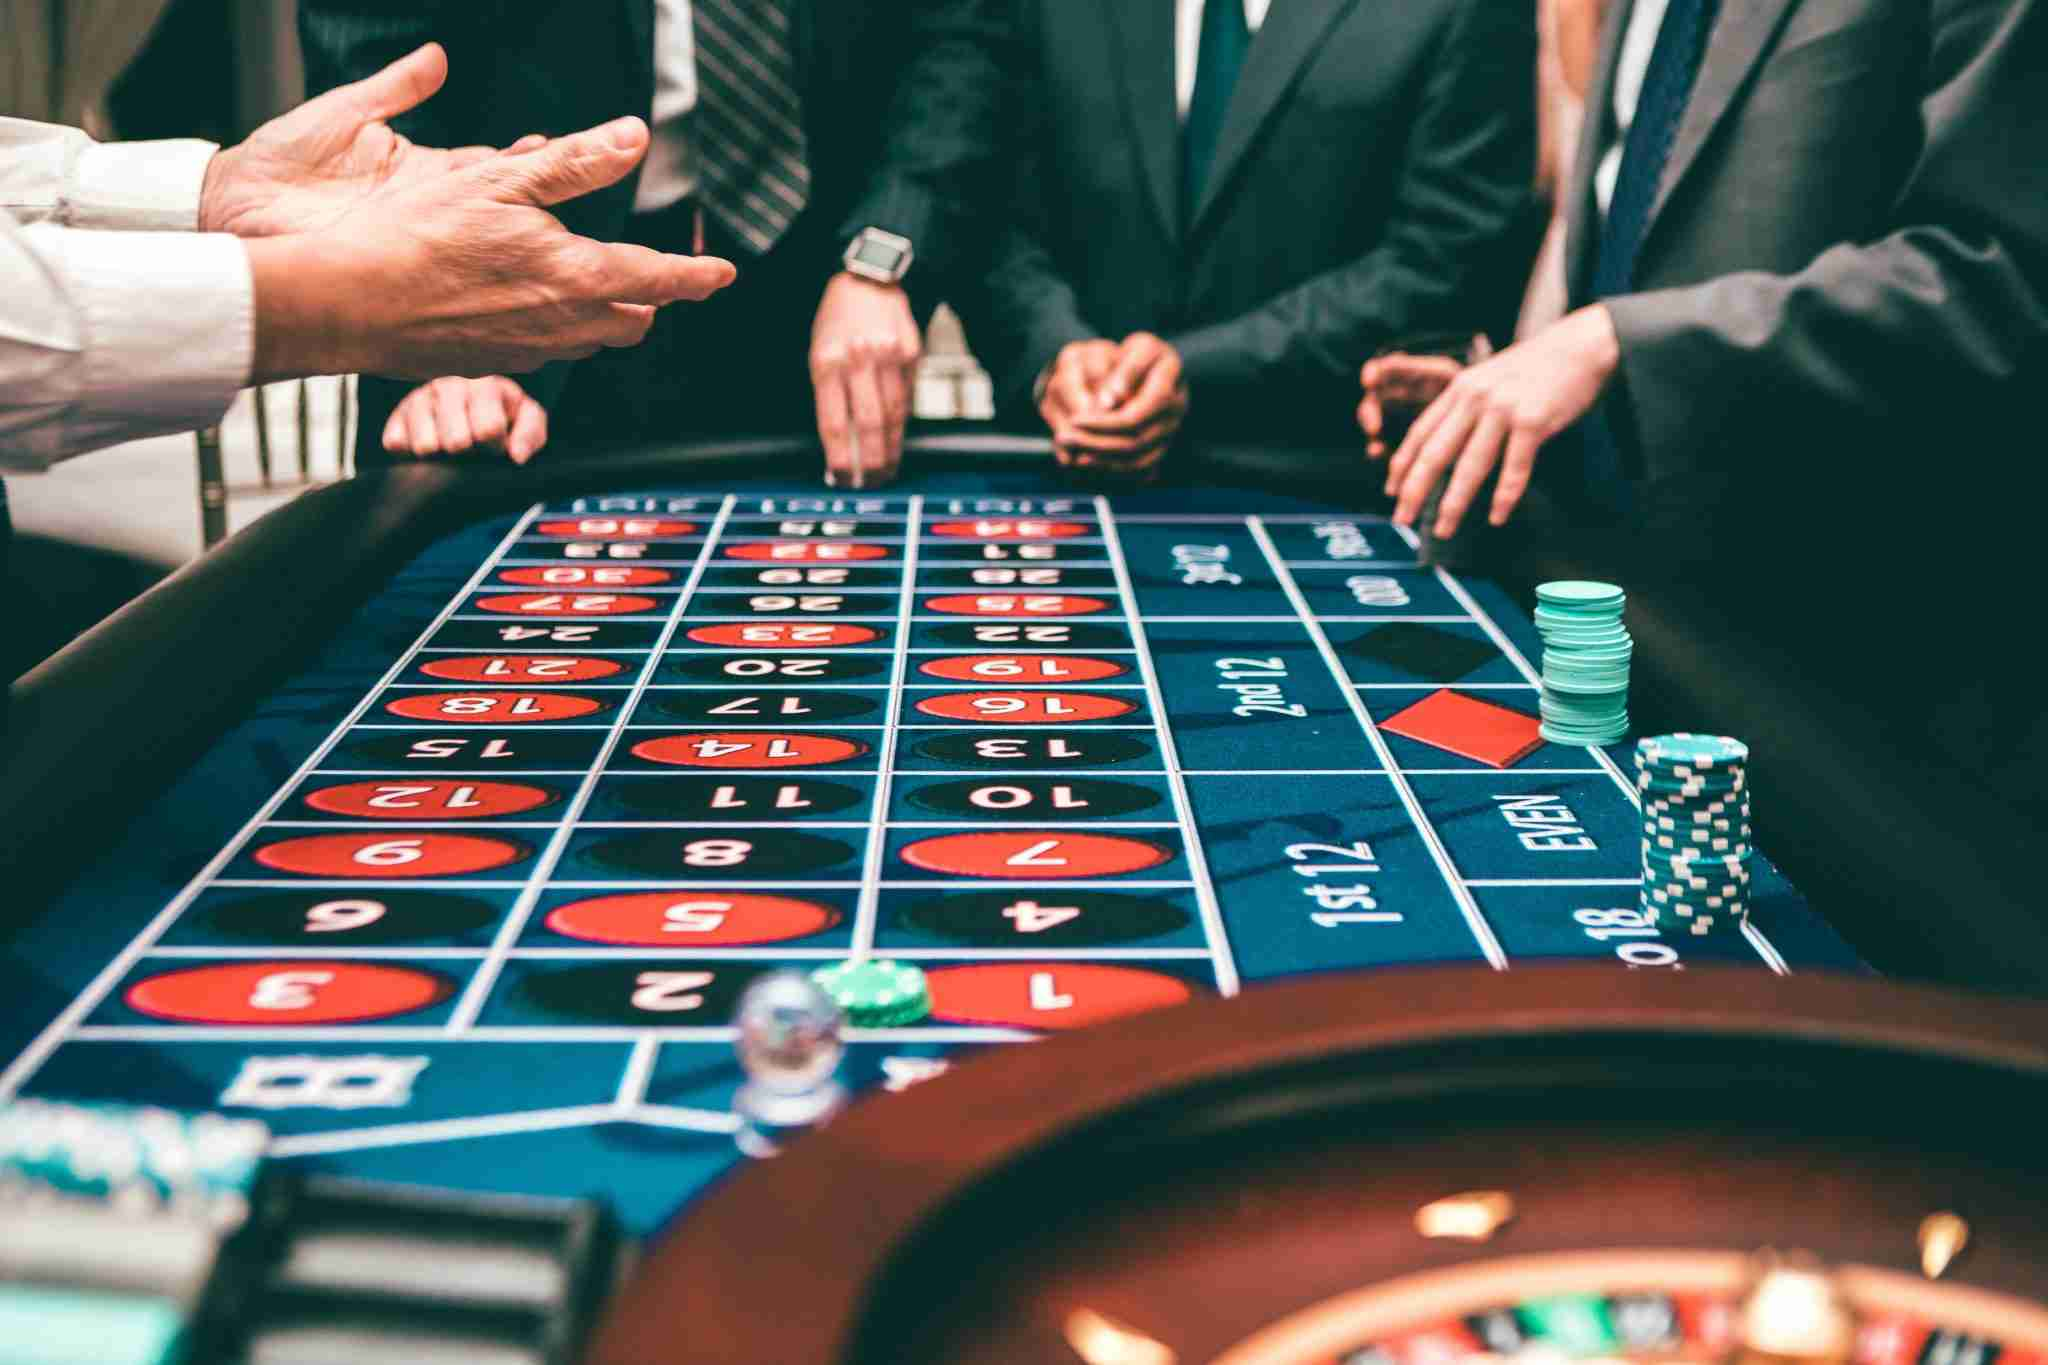 People Playing Roulette In A Casino